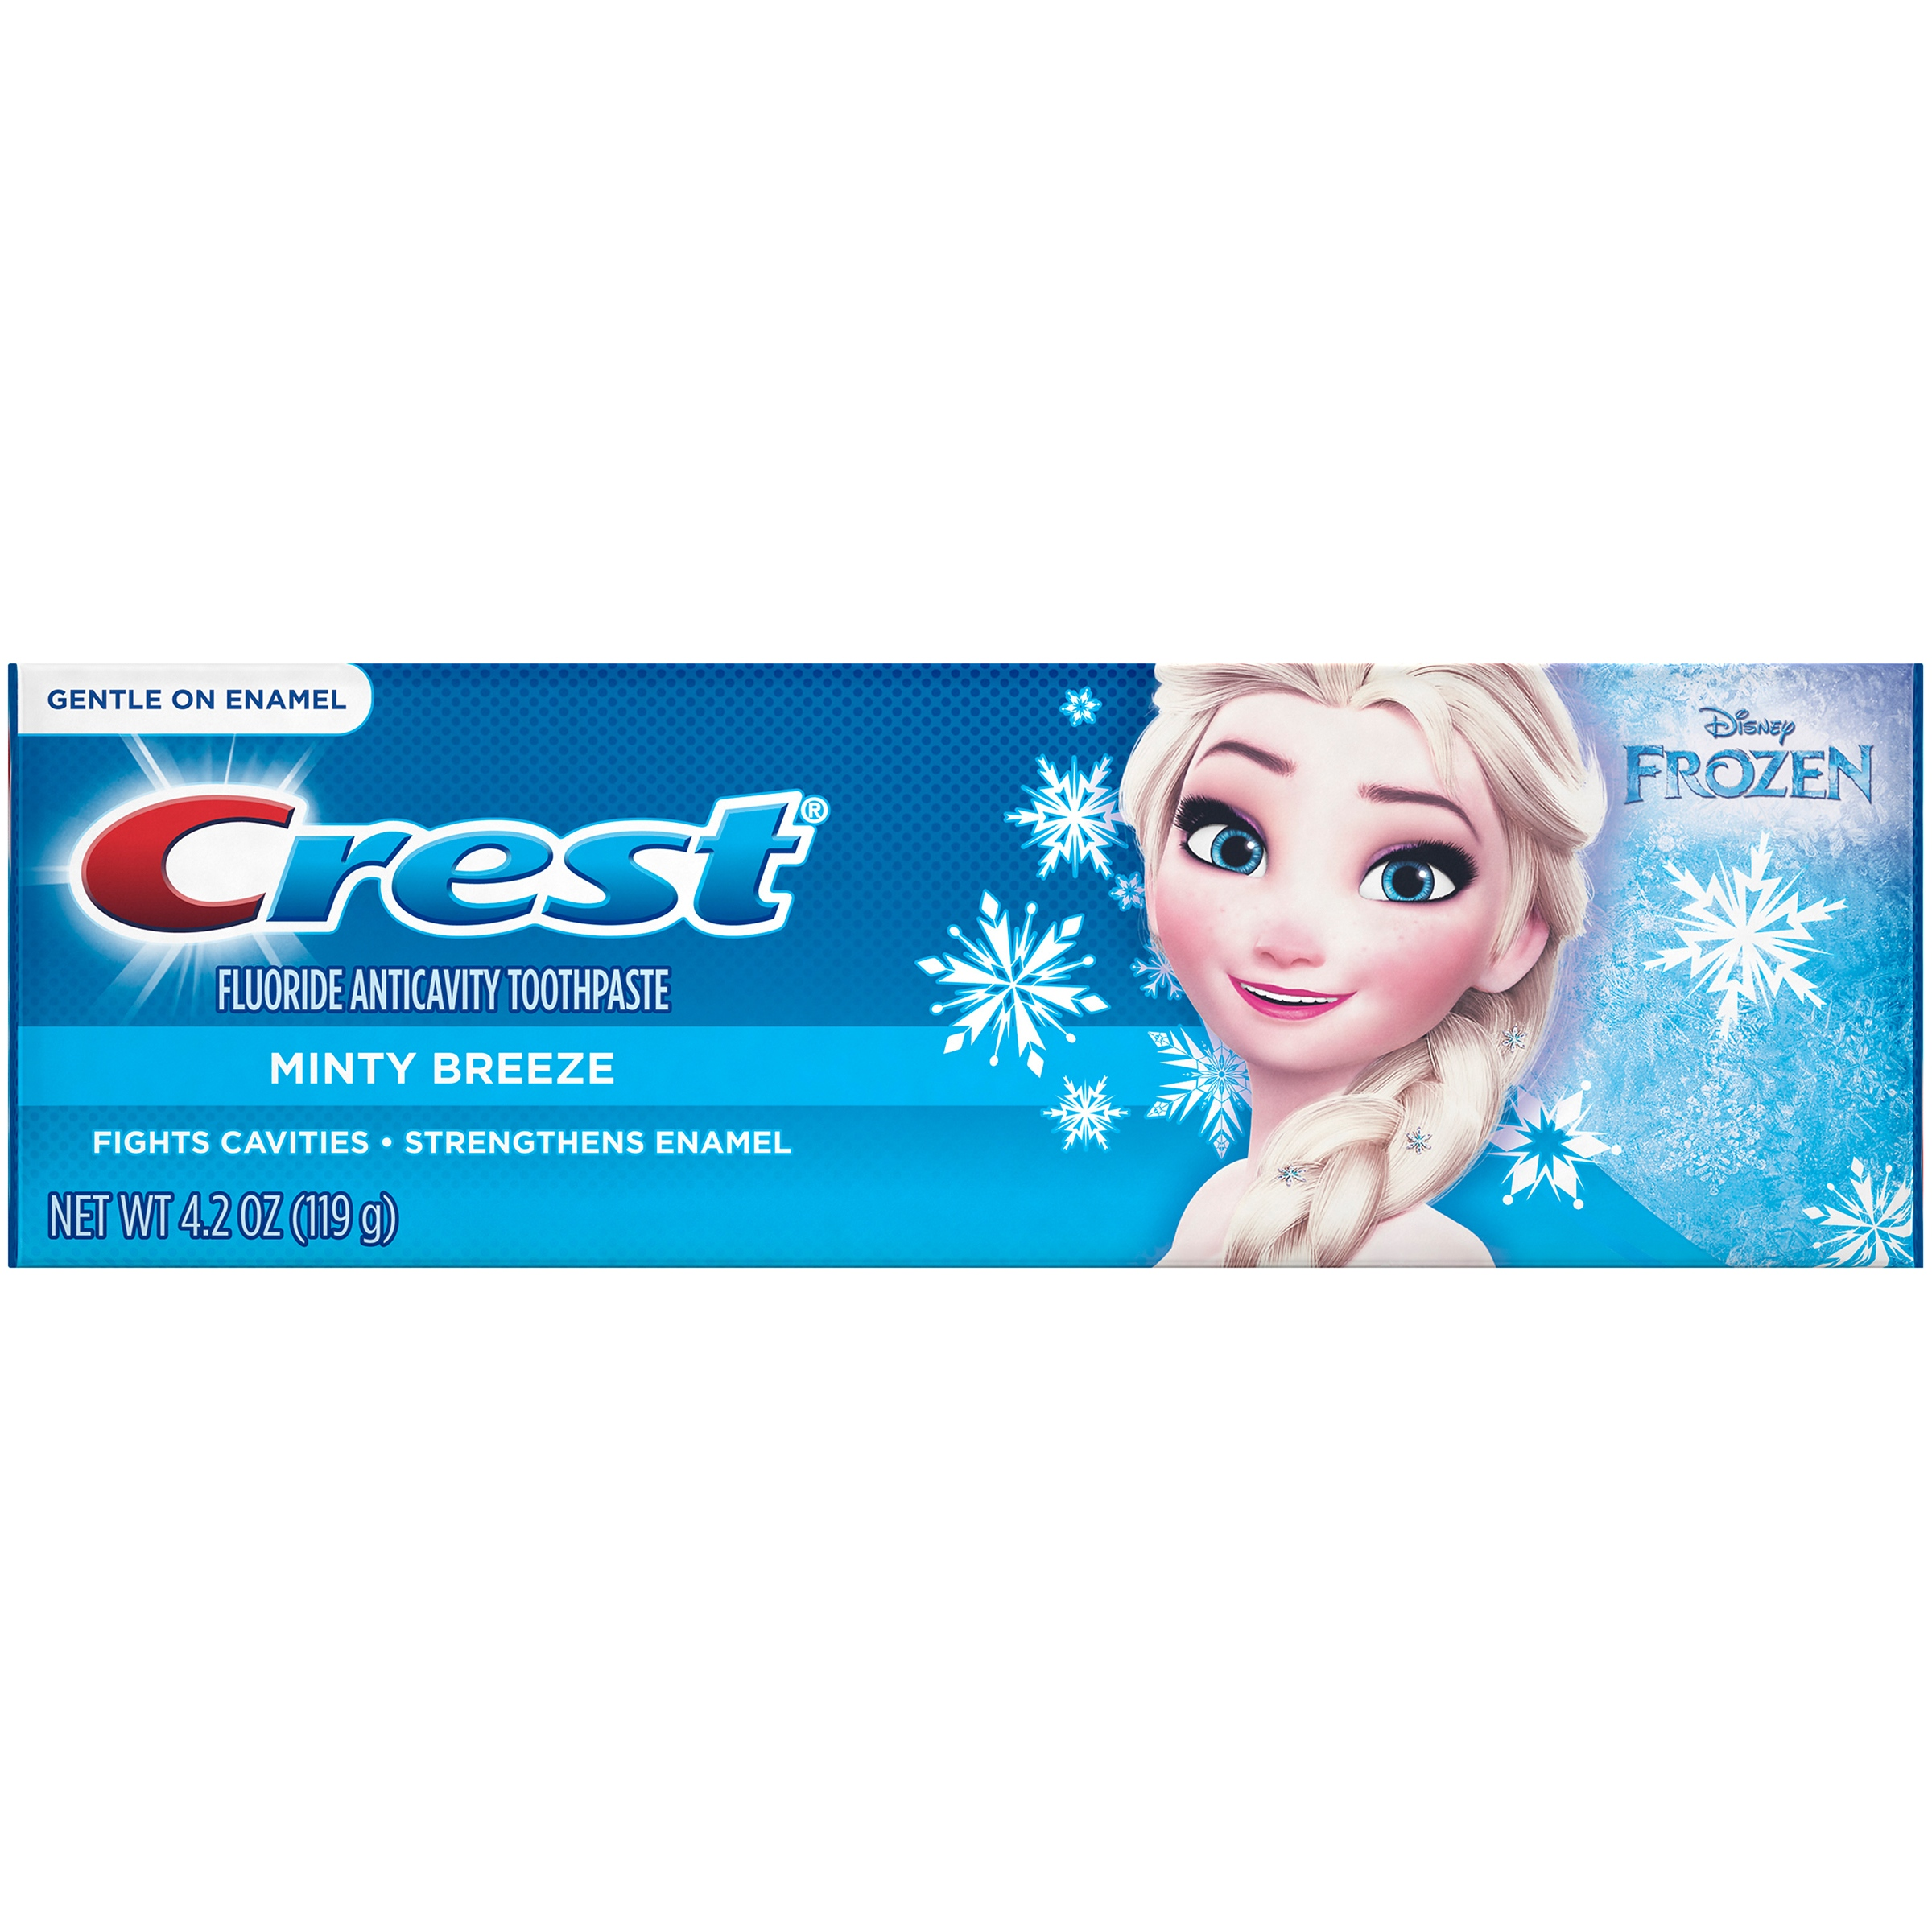 Pro Health Jr Crest Pro-Health Jr. Disney Frozen Characters Kids Minty Toothpaste with FREE Disney Magic Timer App by Oral-B 4.2 oz